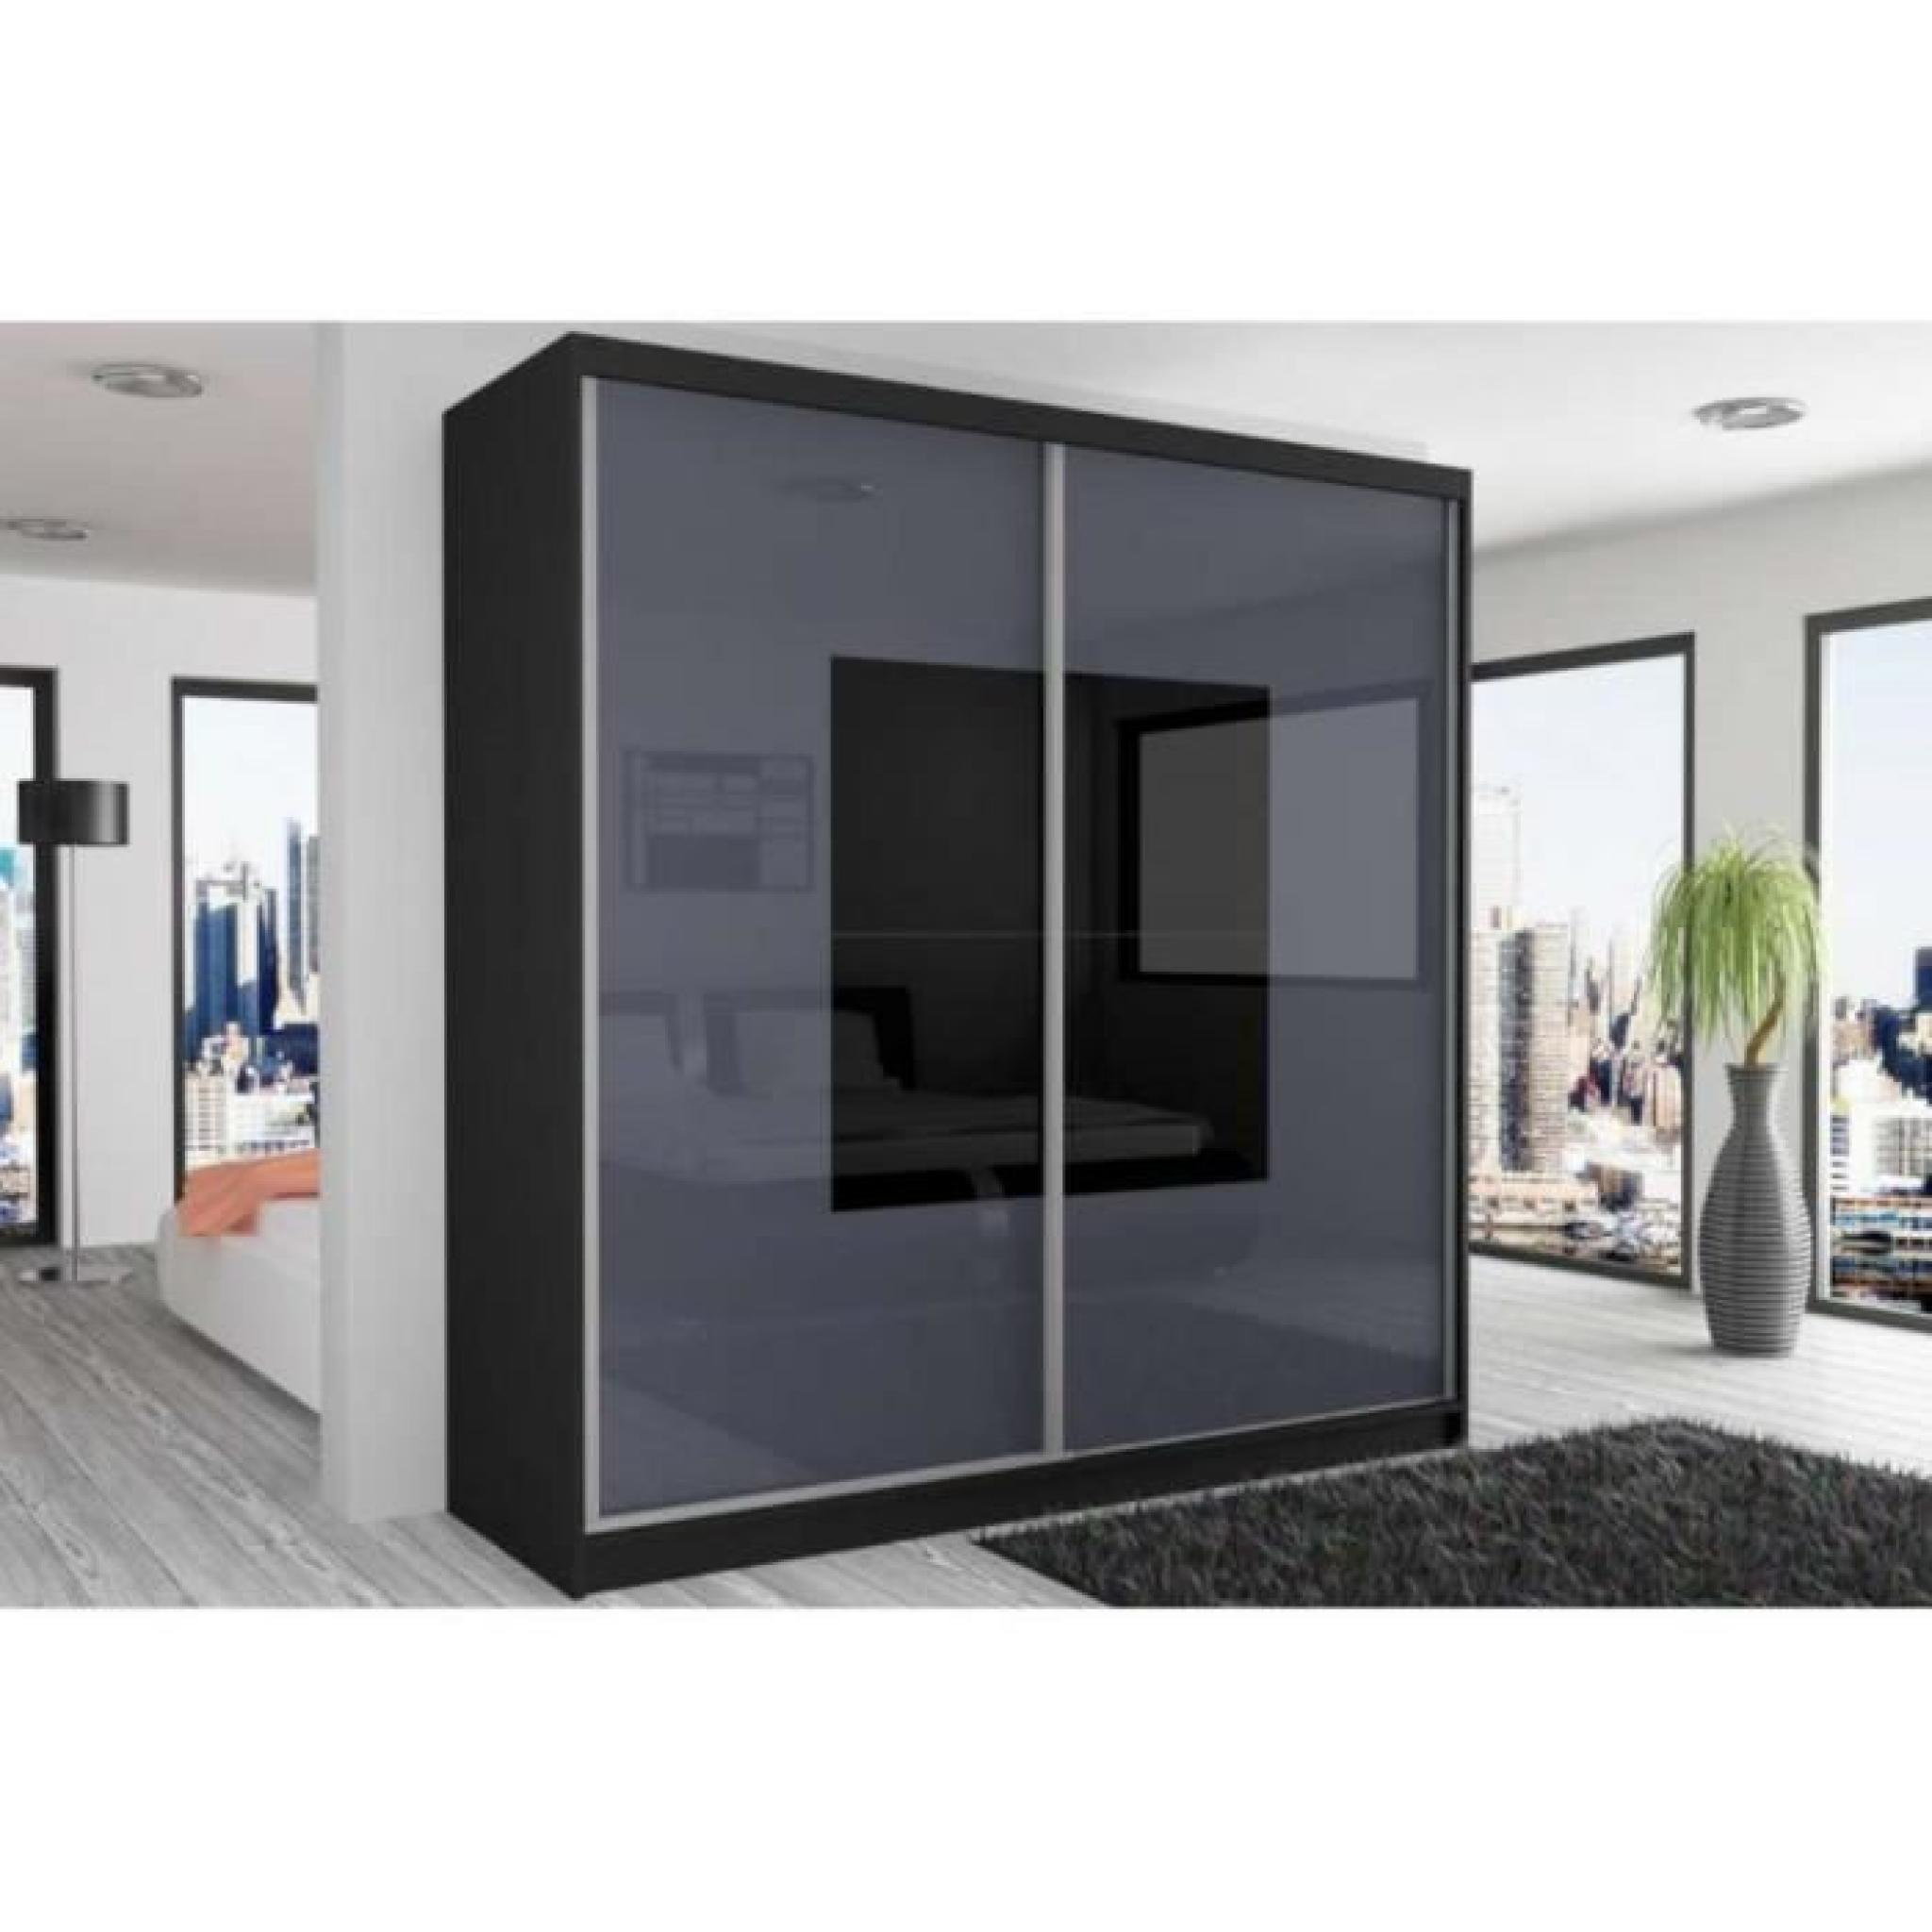 beauty 3 armoire 218 200 60 couleur noir mat acier noir. Black Bedroom Furniture Sets. Home Design Ideas